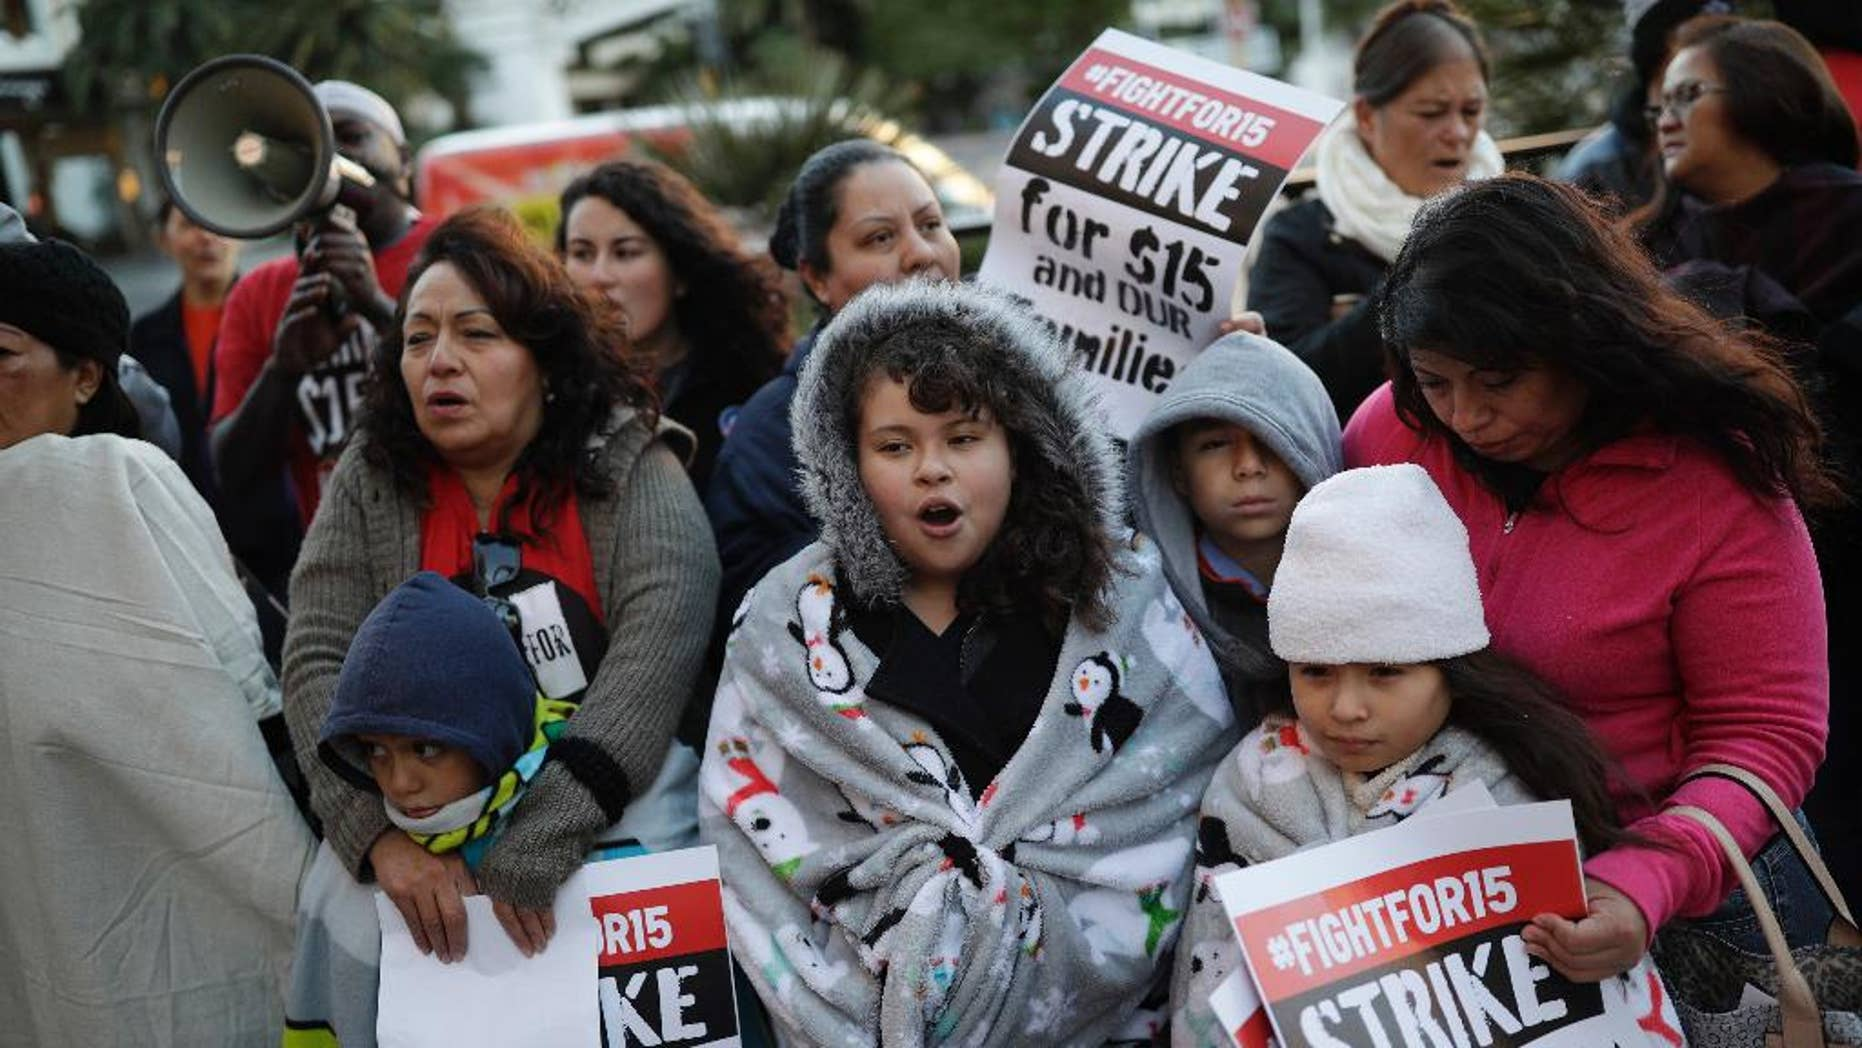 "FILE – In this Nov. 29, 2016, file photo, people protest as part of the National Day of Action to Fight for $15 near a McDonald's restaurant along the Las Vegas Strip in Las Vegas. A cluster of Black Lives Matter groups and the organization leading the push for a $15-an-hour wage are joining forces to combine the struggle for racial justice with the fight for economic equality, just as the Rev. Martin Luther King Jr. tried to do in the last year of his life. They are launching their first national joint action on April 4, 2017, the 49th anniversary of King's assassination, with ""Fight Racism, Raise Pay"" protests in two dozen cities, including Atlanta; Chicago; Boston; Denver; and Las Vegas. (AP Photo/John Locher, File)"